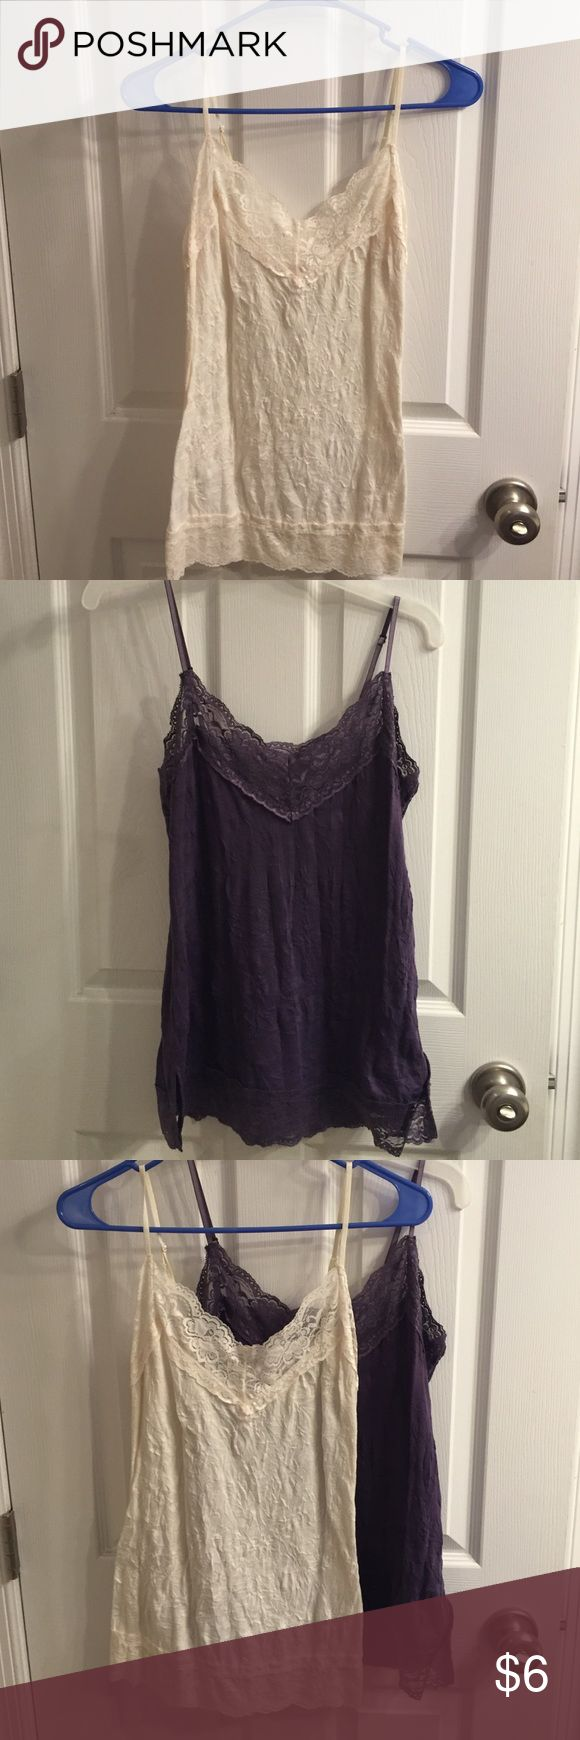 Bundle of women's camisoles. 2 lace women's camisoles. Off white and plum. These are the tops that are supposed to look wrinkled. Look great under sweaters or Blazers! Xhilaration Tops Camisoles